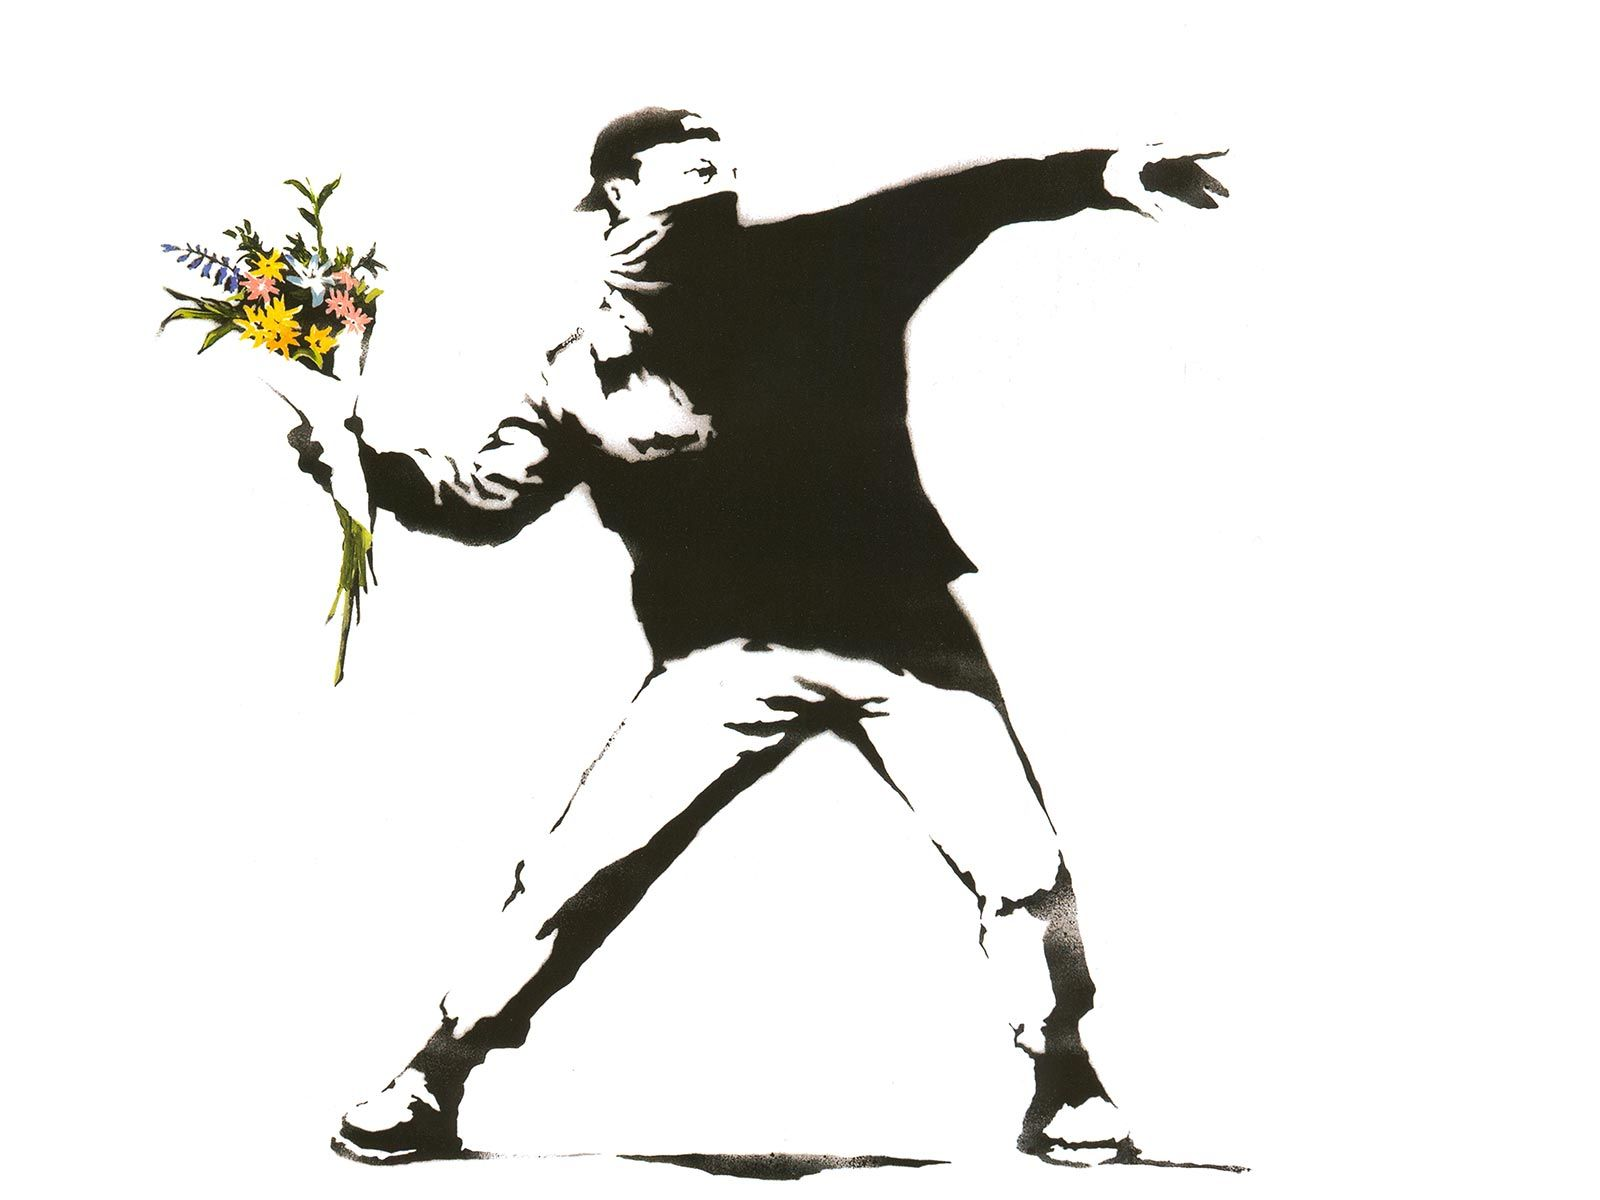 Who is Banksy? The Most Comprehensive Study of His Life ...